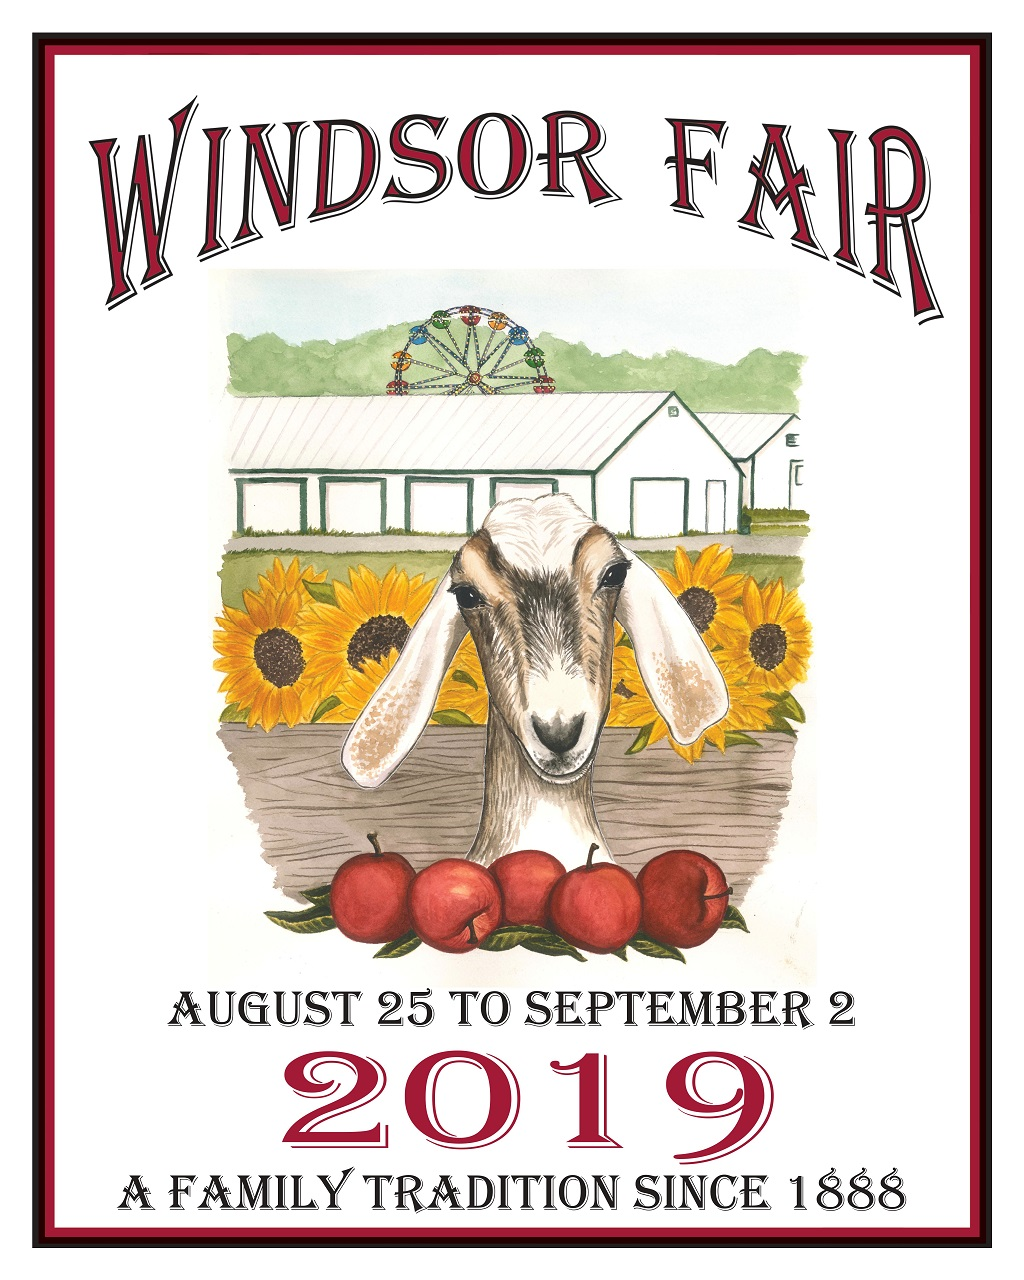 Windsor Fair 2019 Quot Schedule Of Events Quot The Town Line